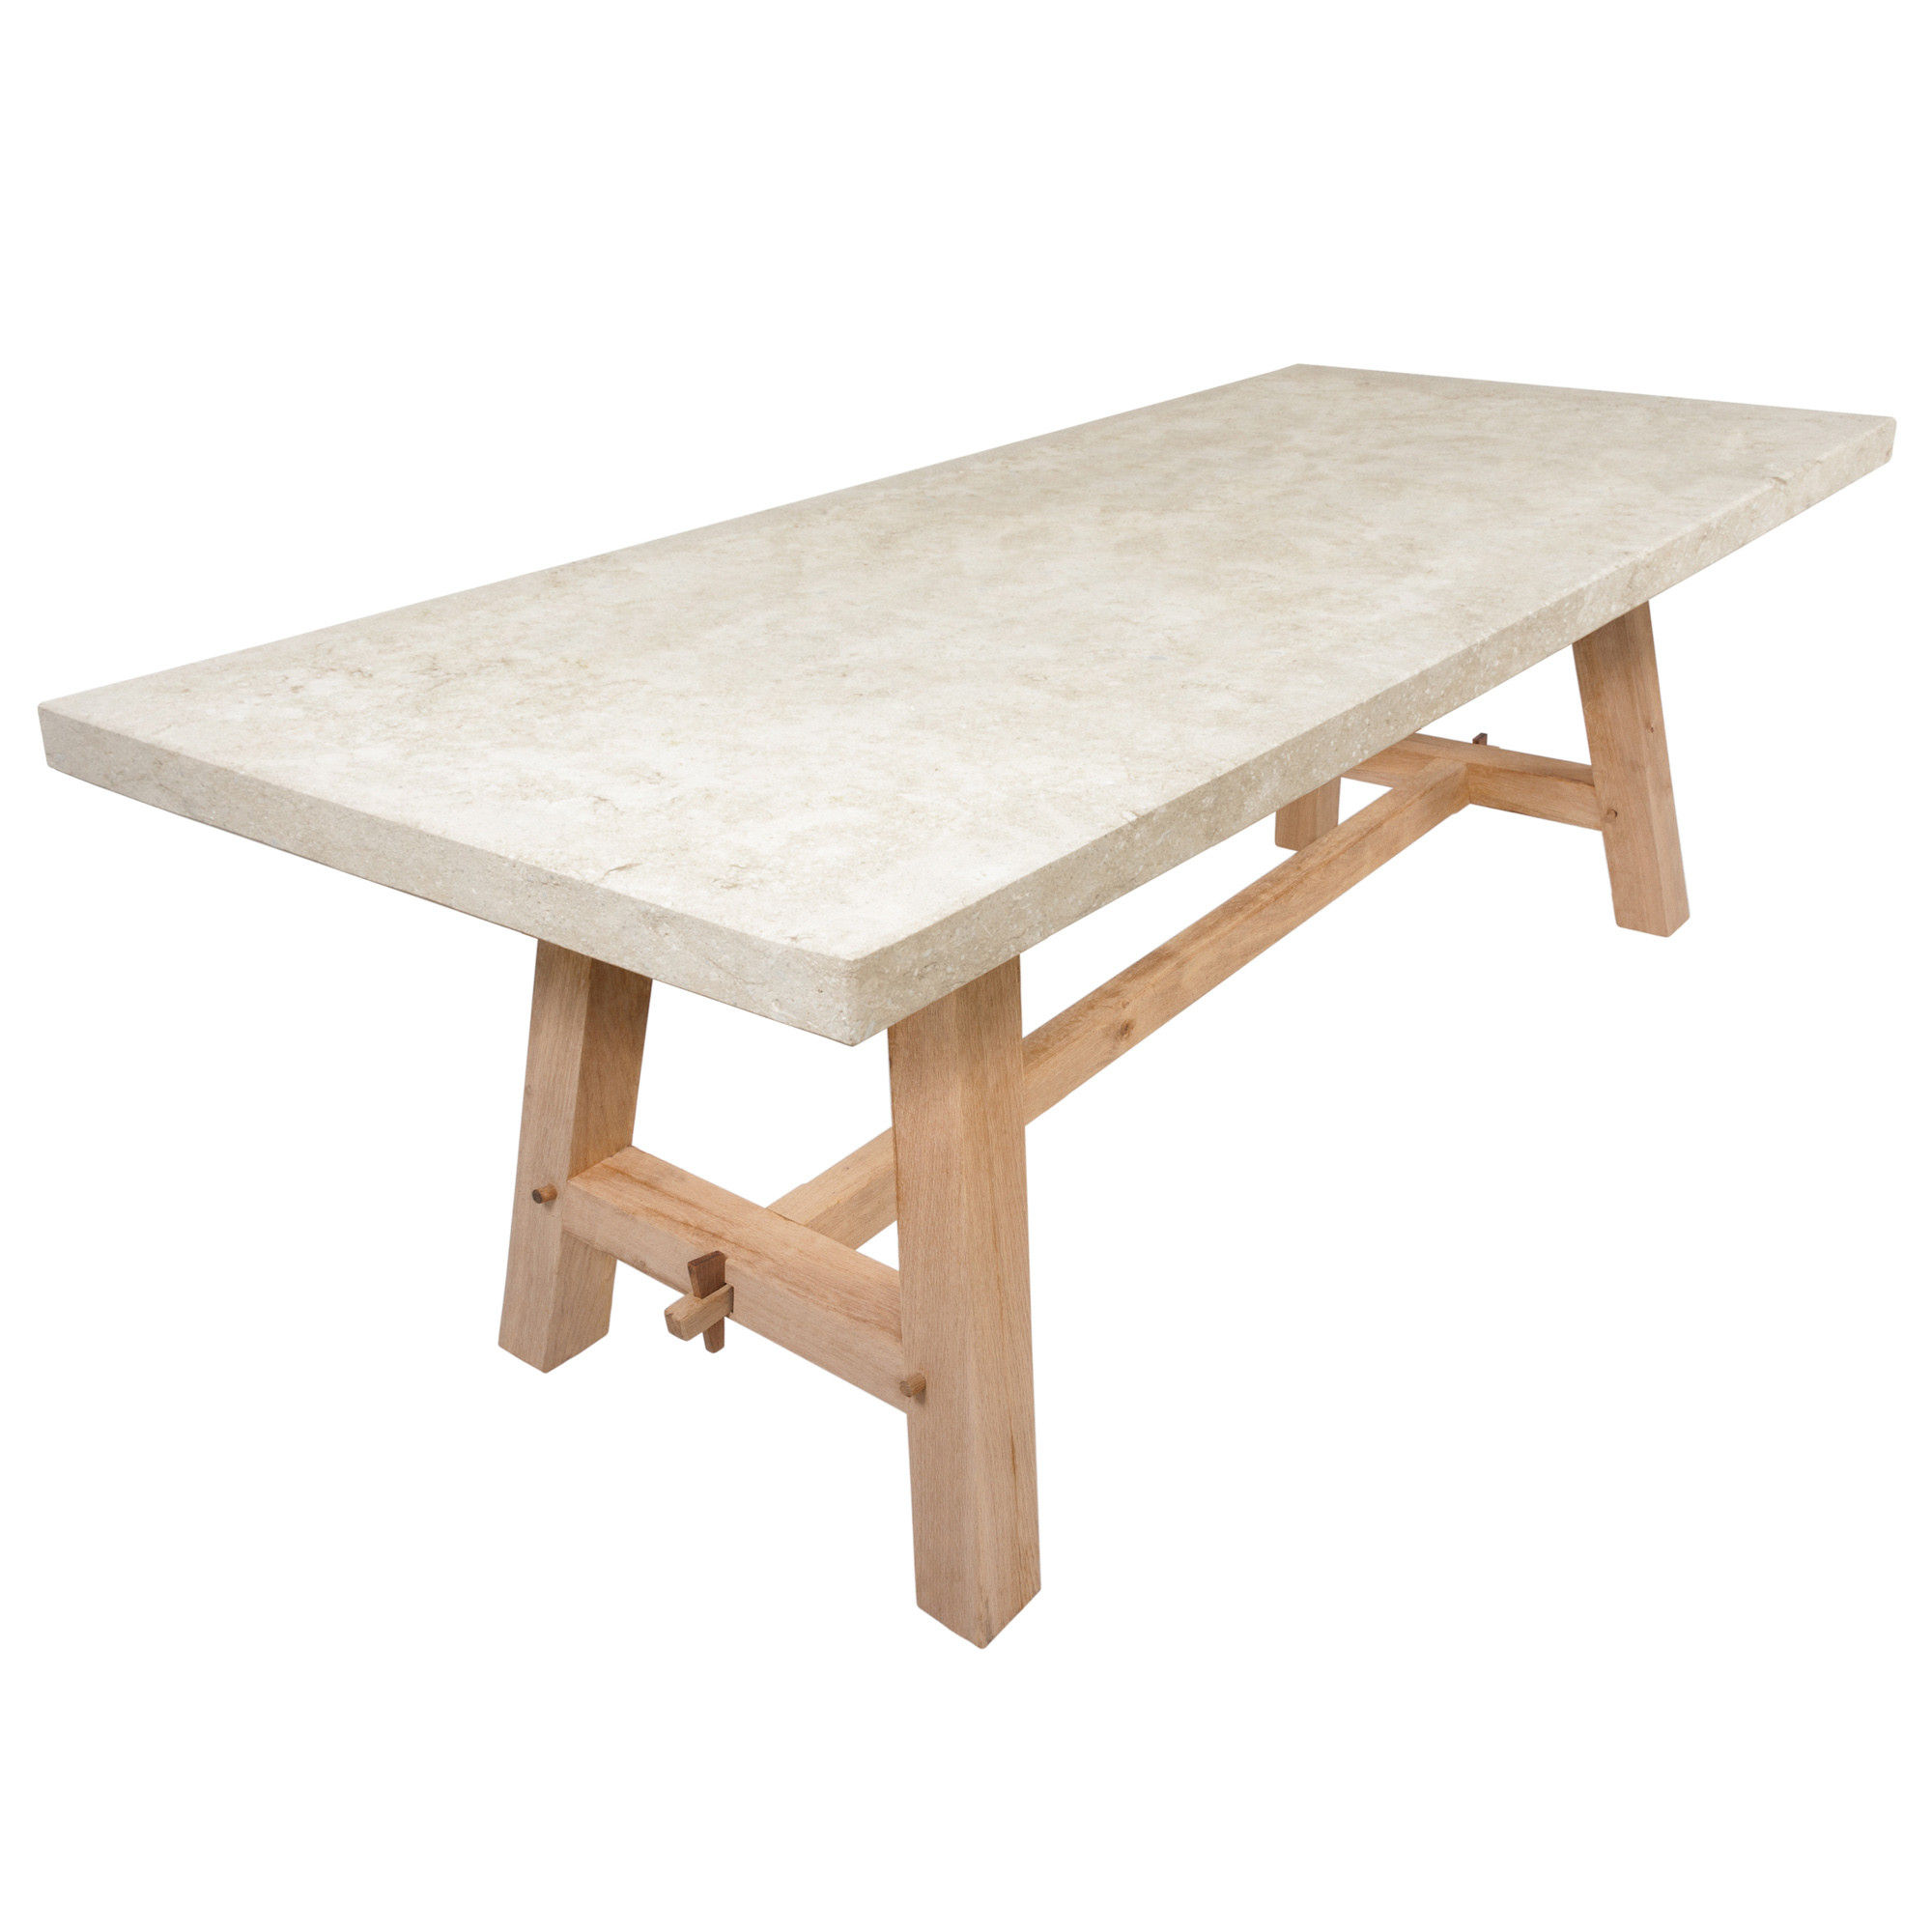 The English Oak Garden Dining Table with Natural Limestone Top